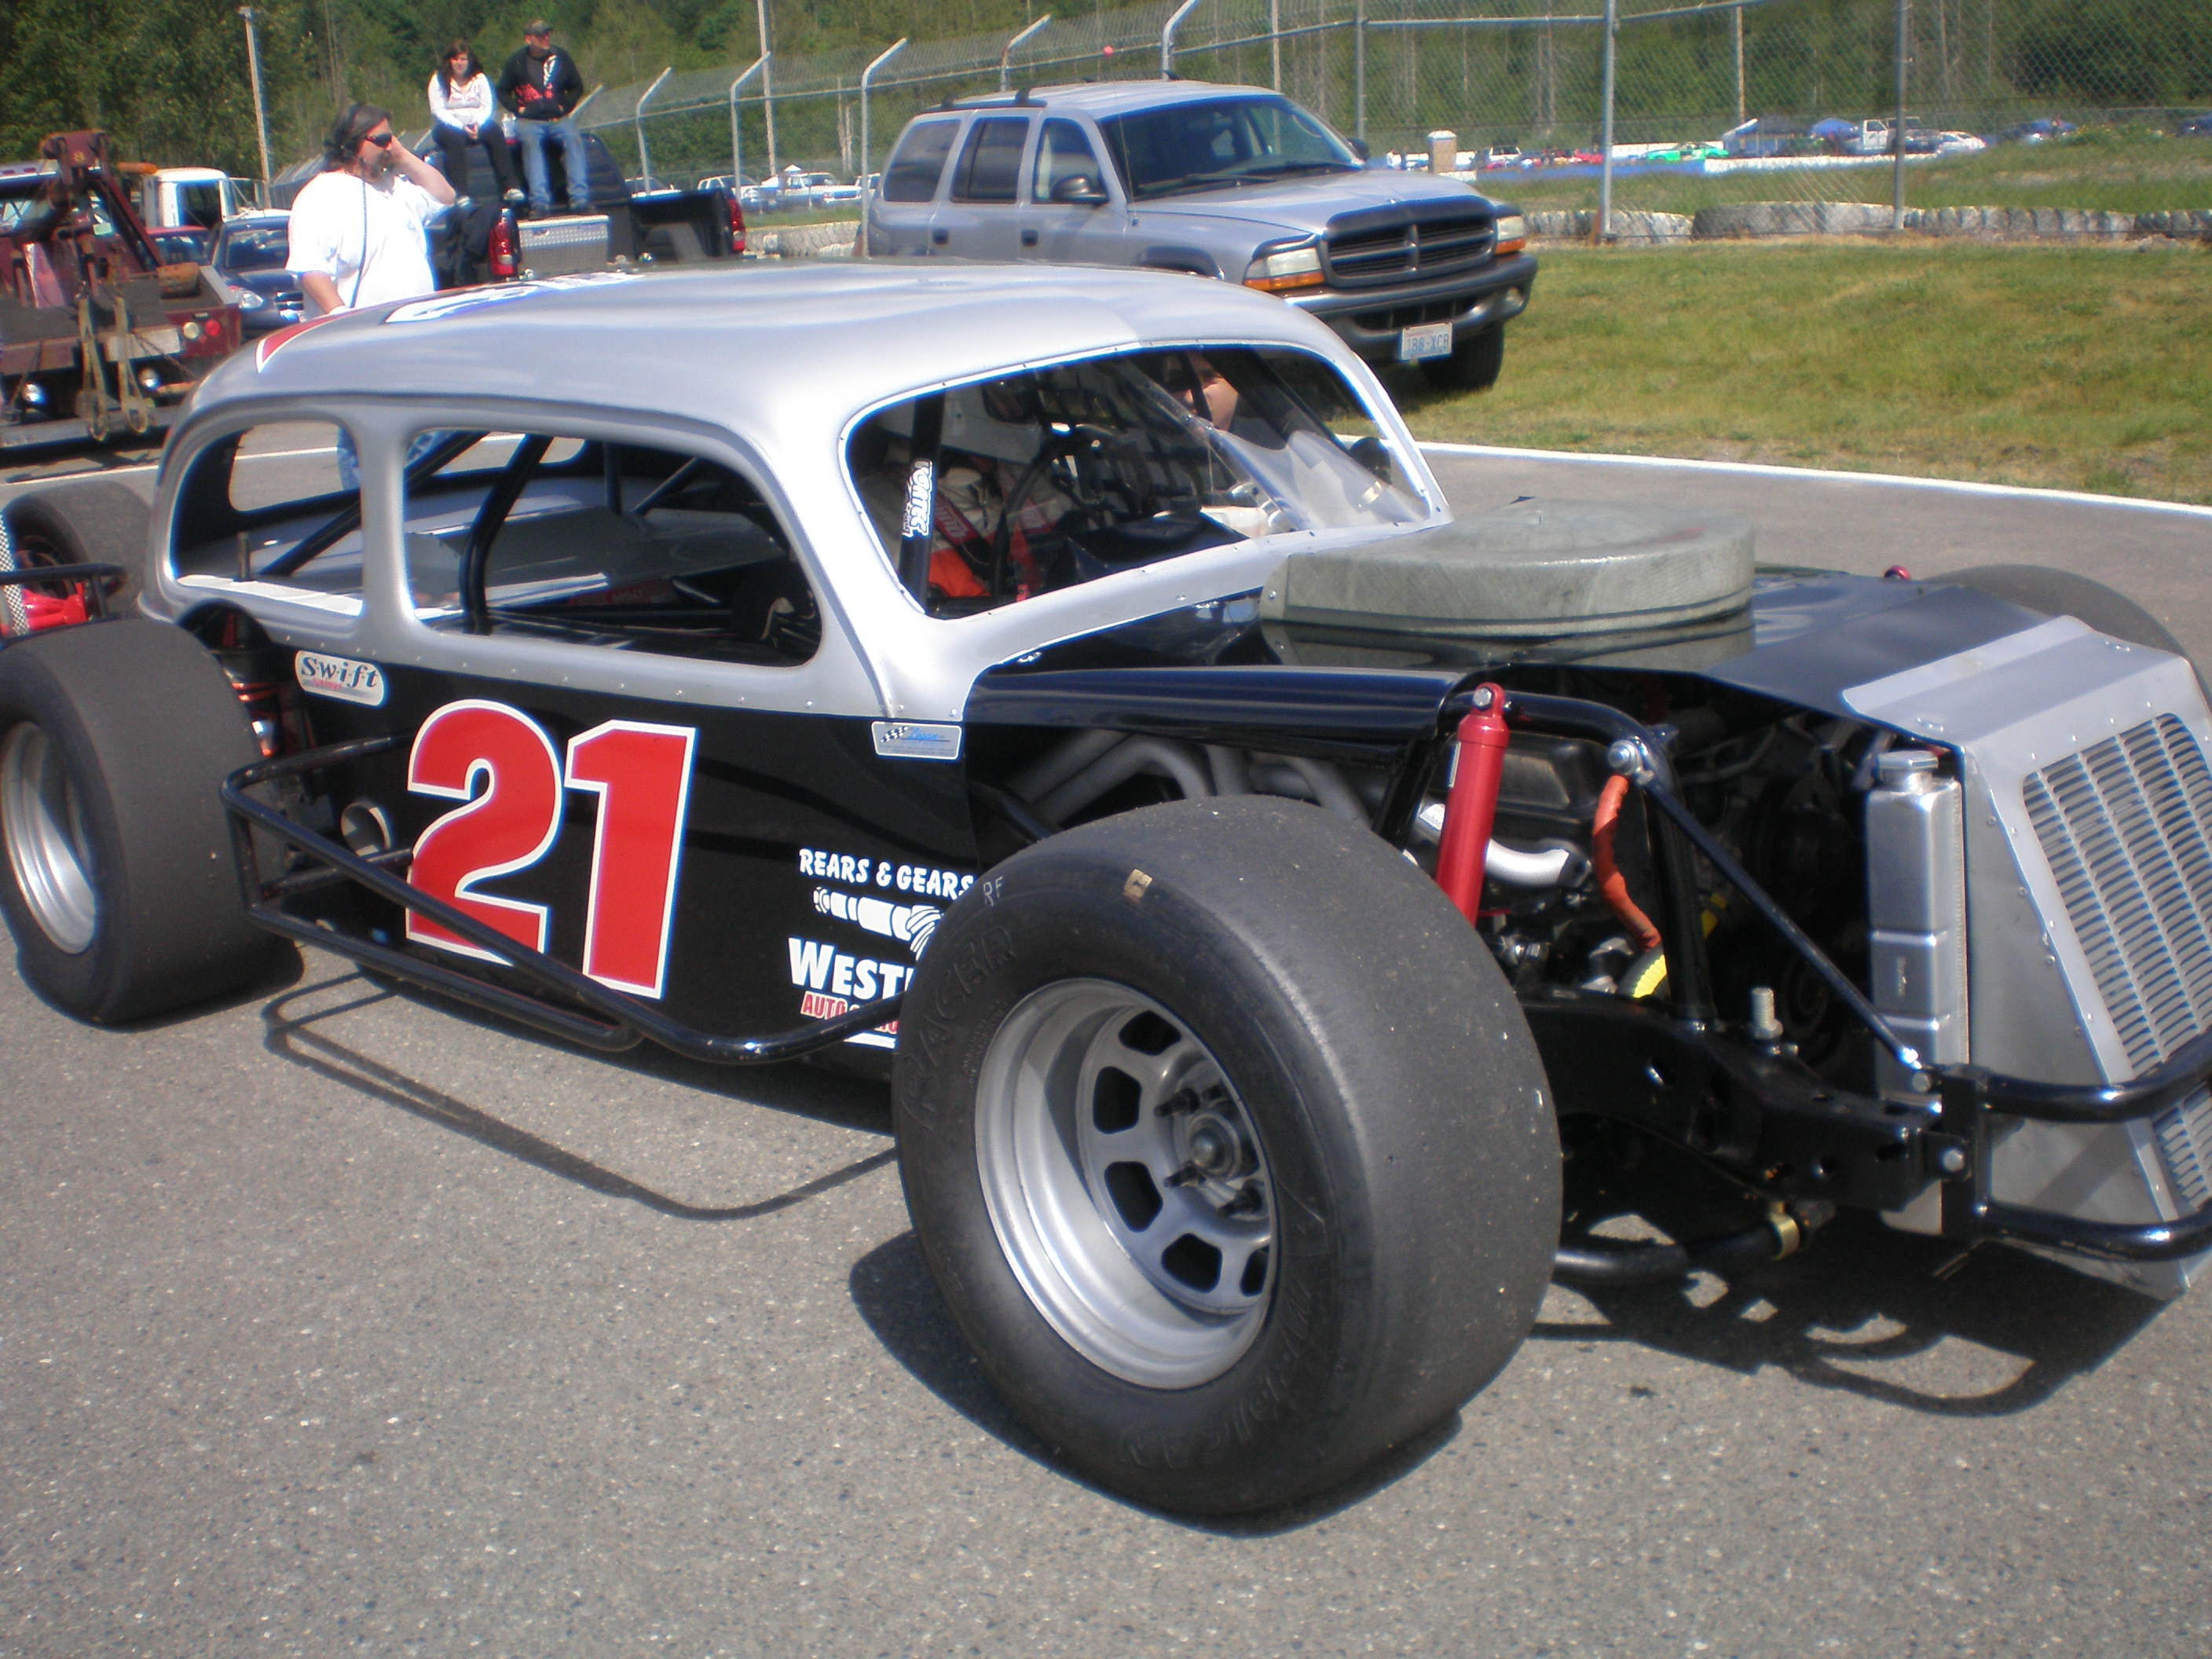 2013 Season Champions: Paul Field-car 21, Mike Clother-car 7 and ...